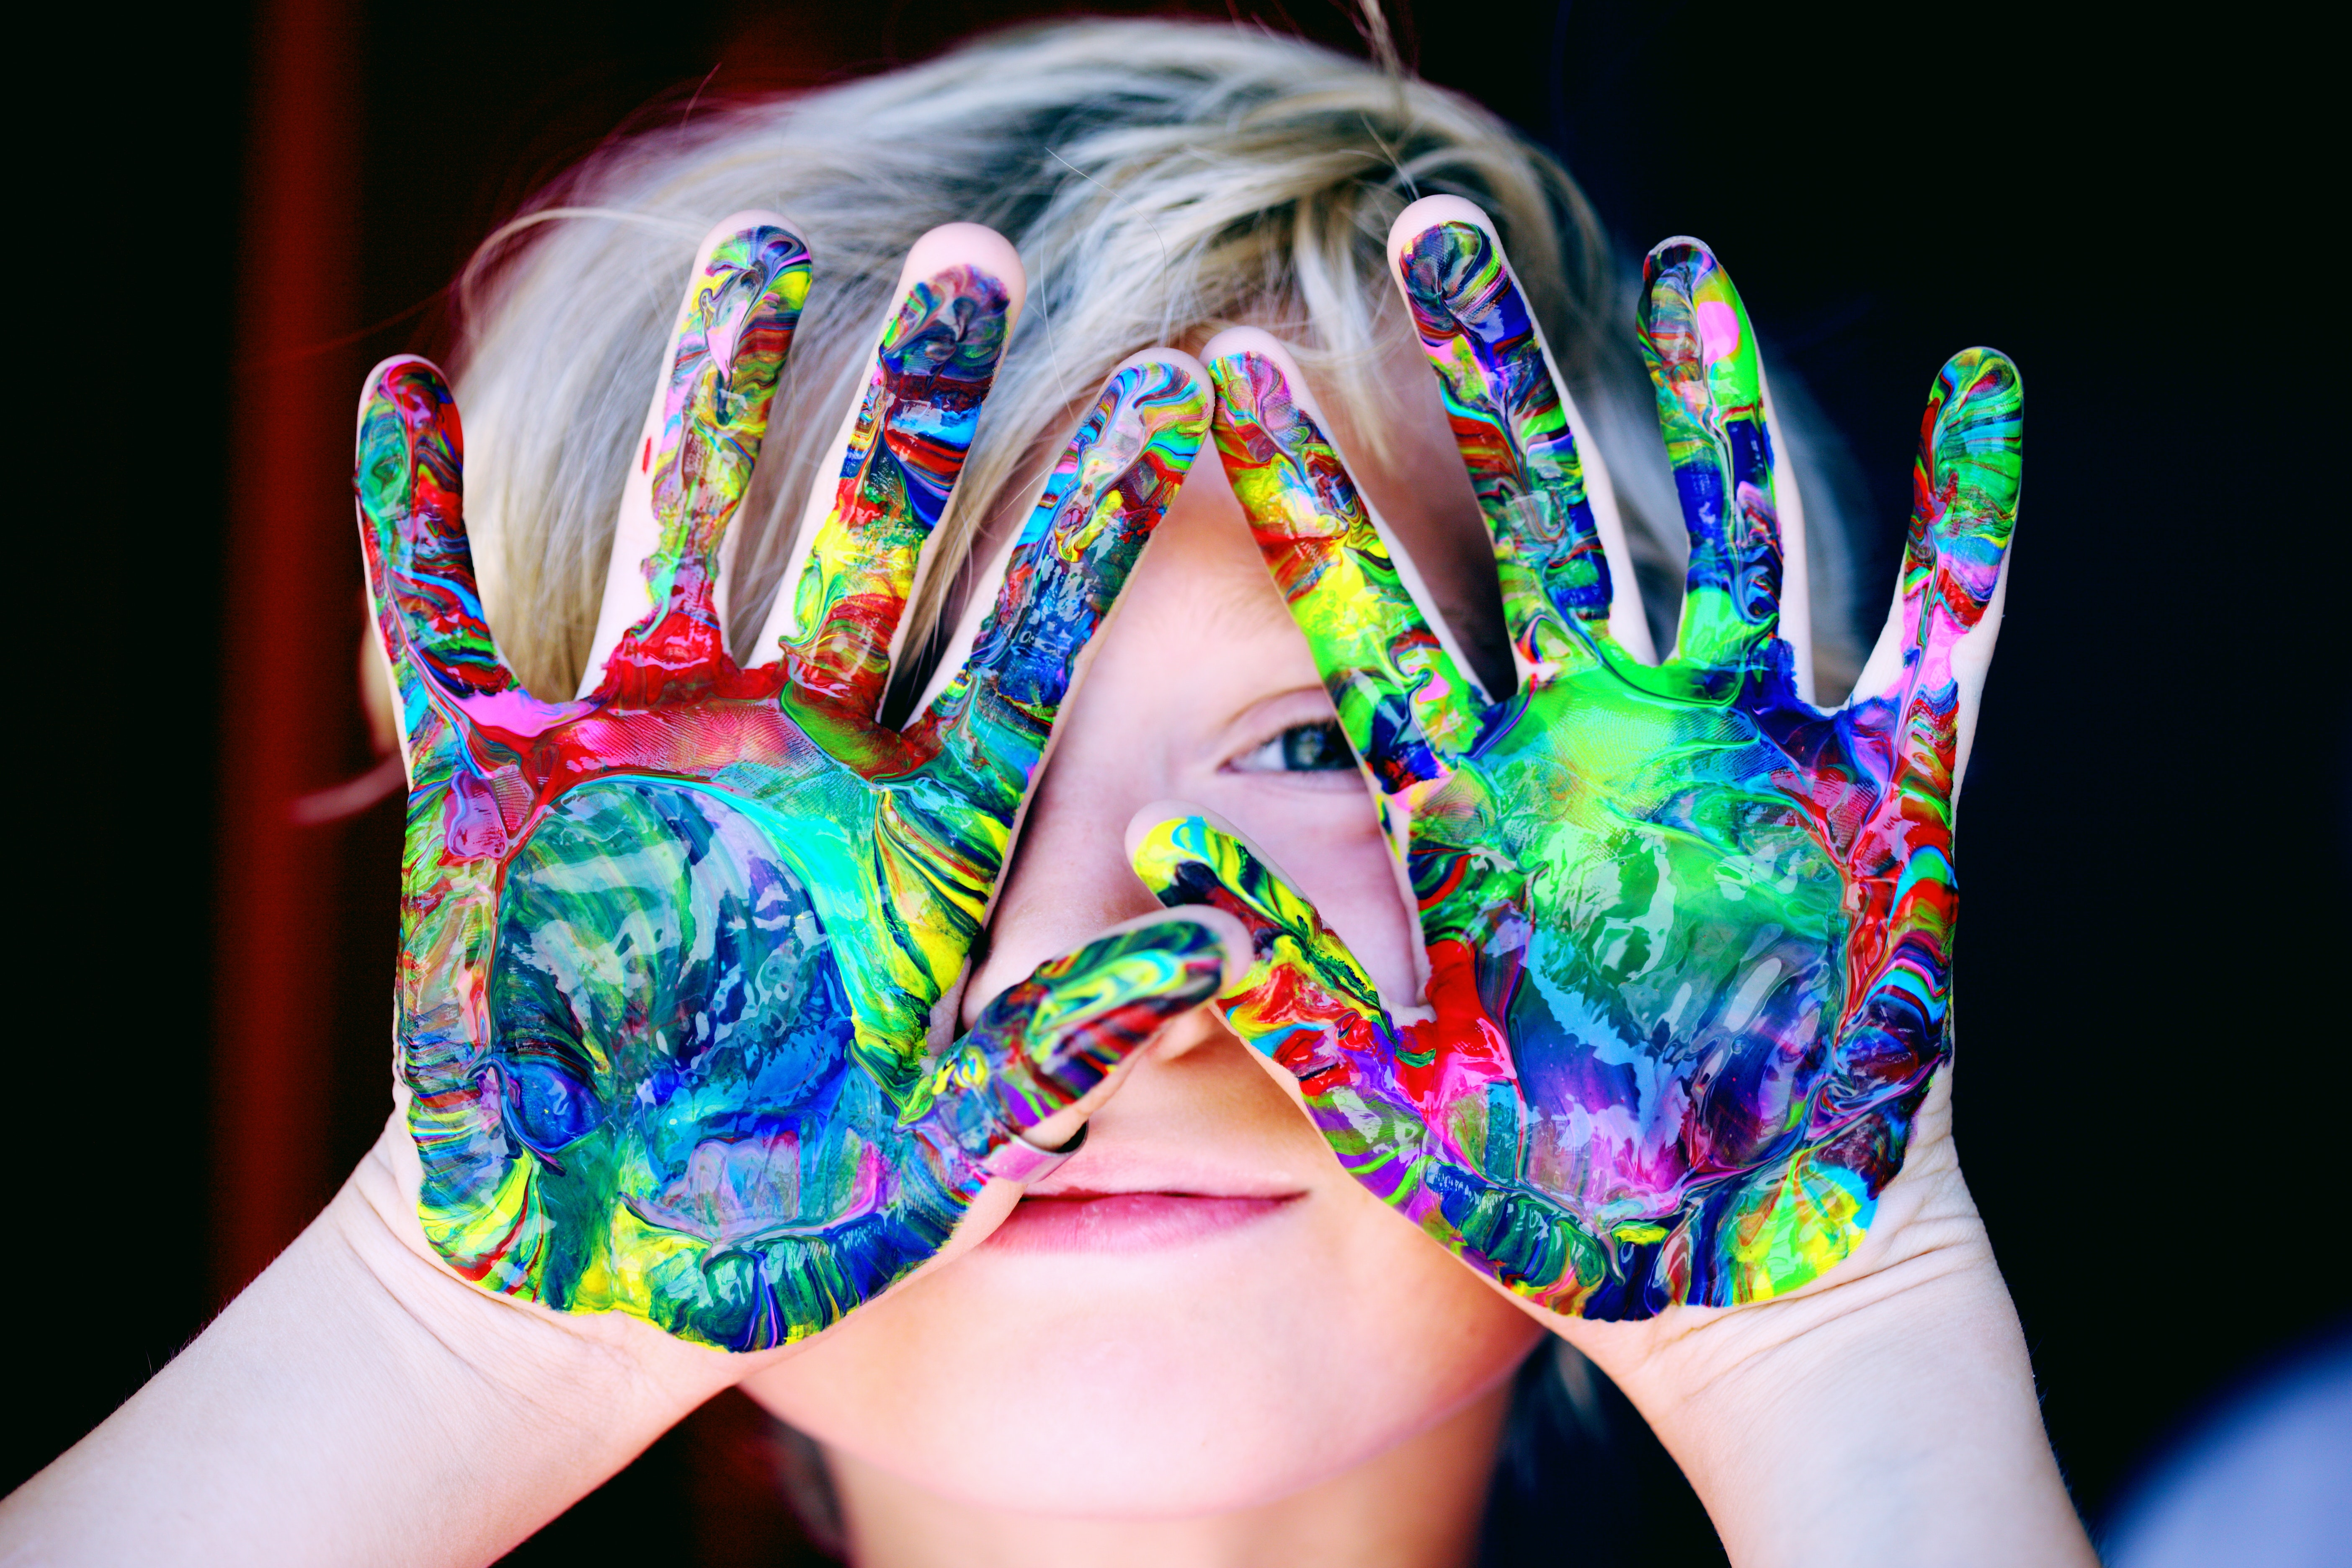 child with hands in front of face, palms out, covered in paint